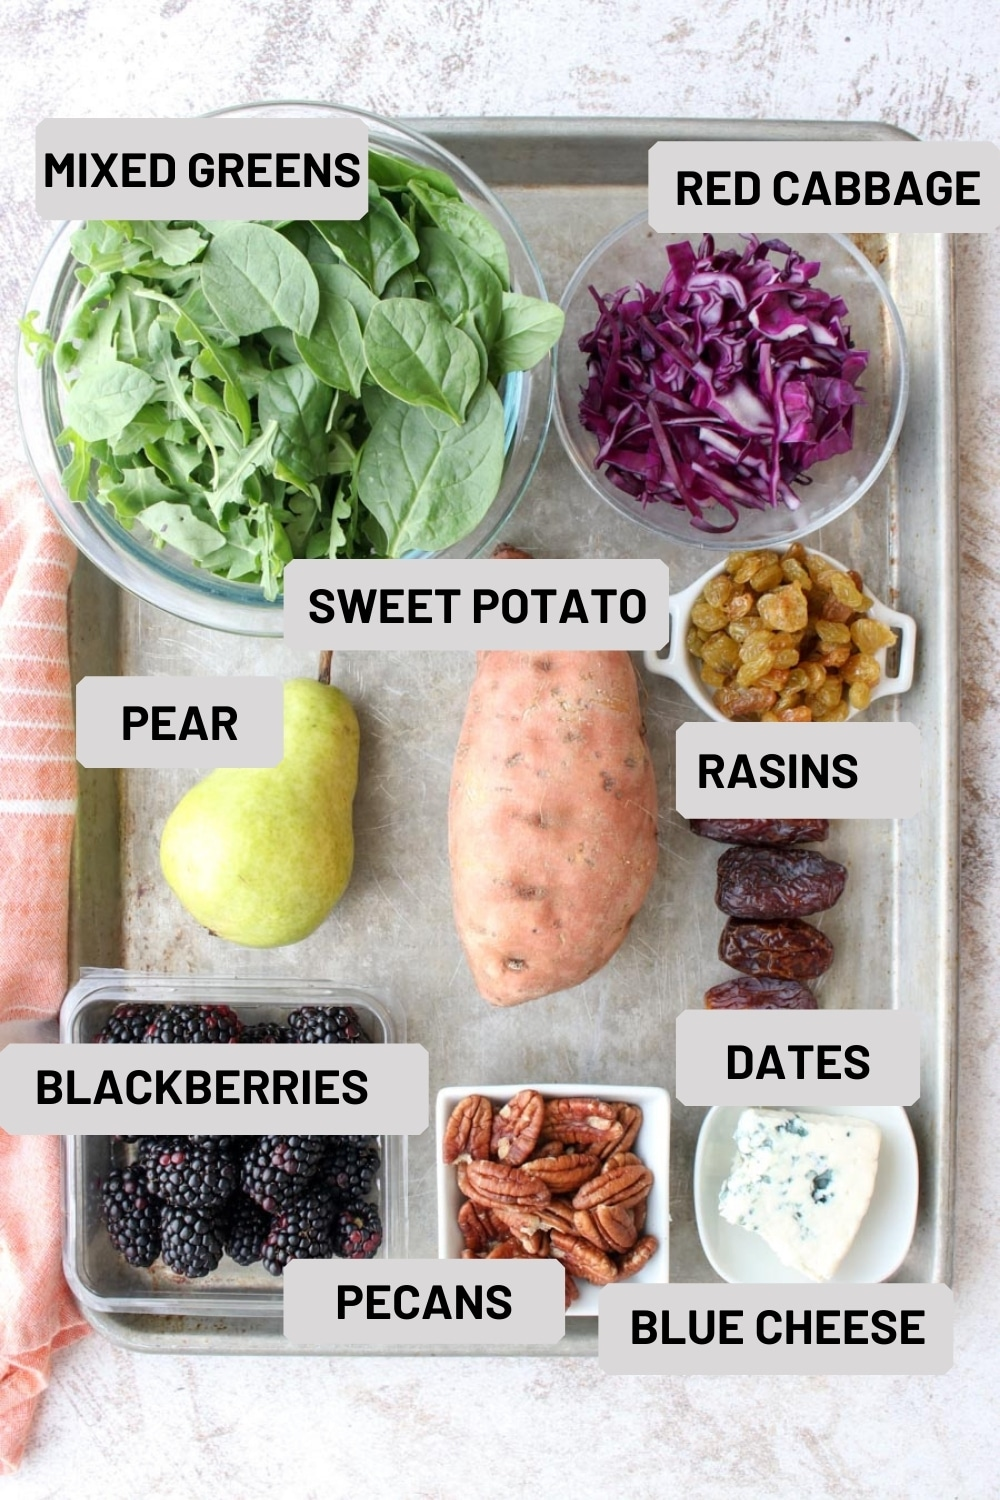 A photo of the ingredients needed to make a fall harvest salad